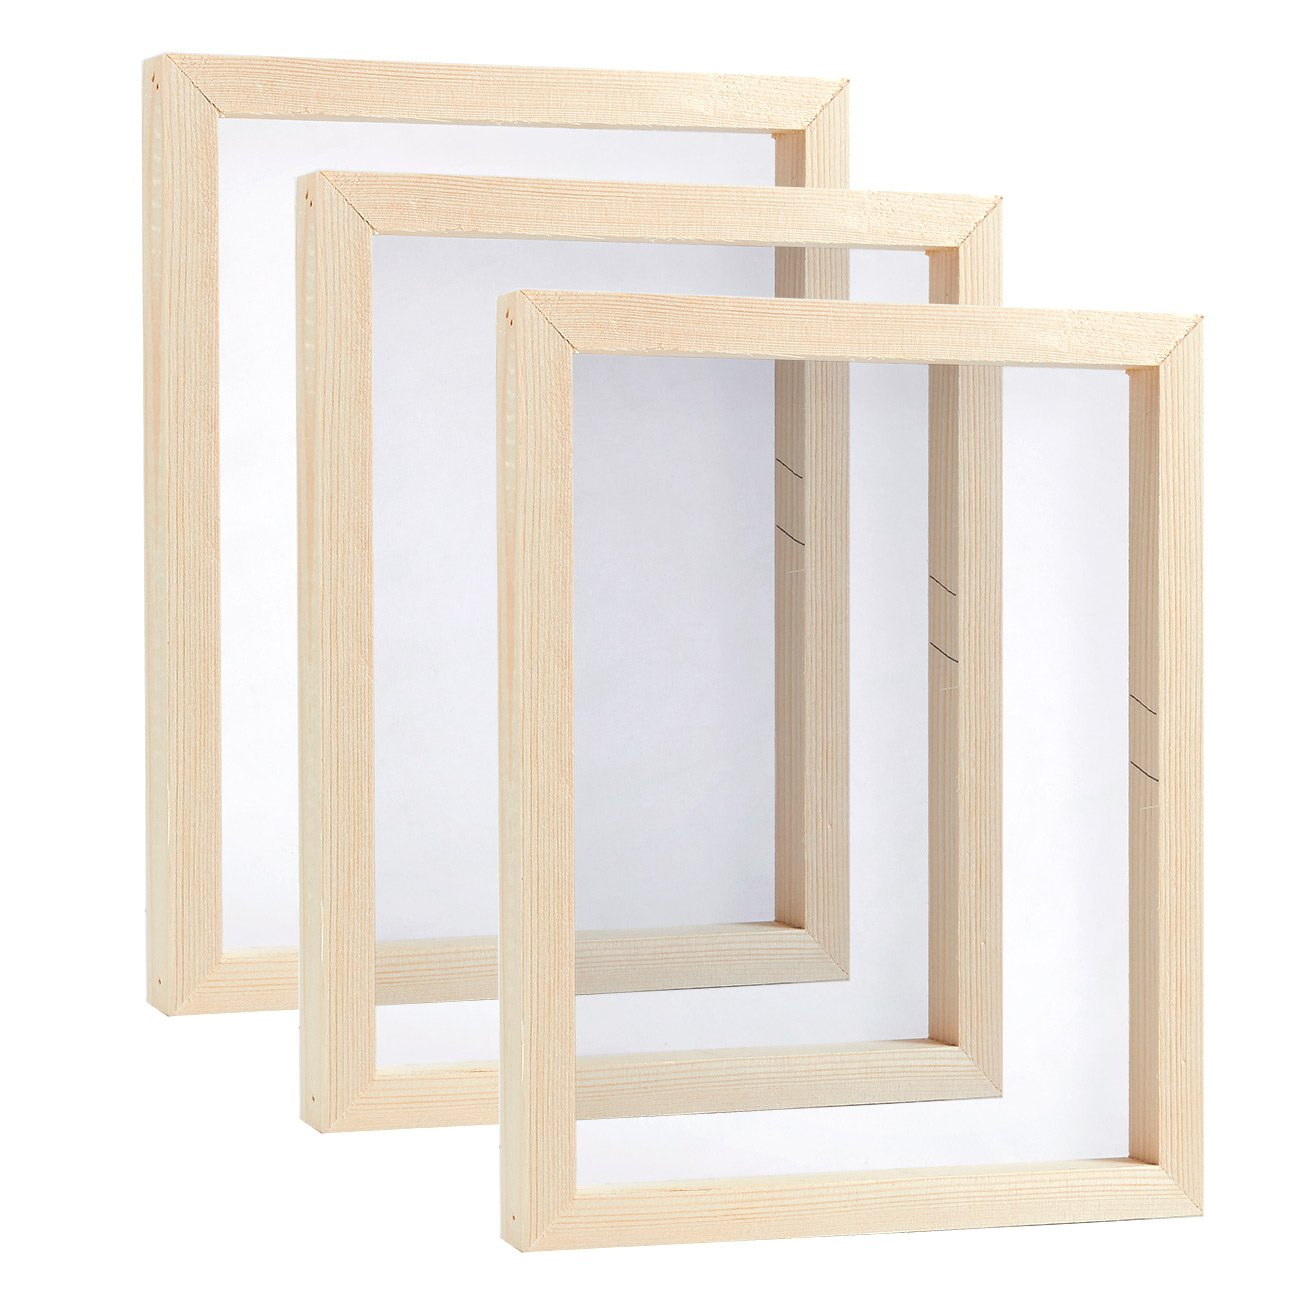 Screen Printing Frame - 3-Pack Mesh Screen with Natural Wooden Frame, Print T-Shirts, Image Transfer, 8 x 10 x 0.75 inches Juvale